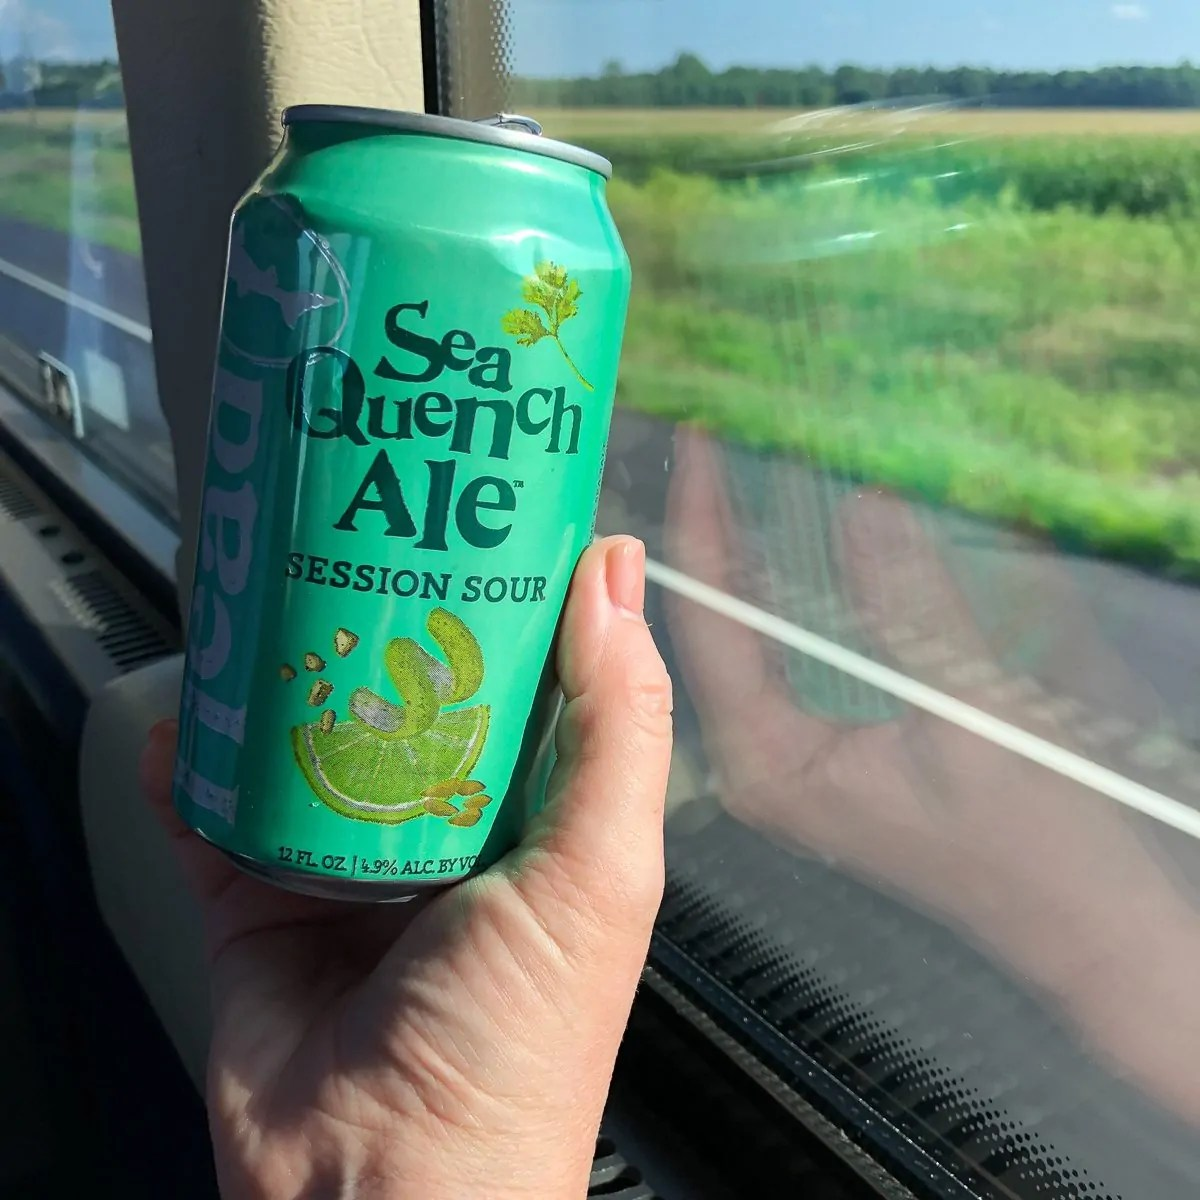 Enjoying a little Sea Quench Ale while on the road to Dogfish Head Brewery in Milton, Delaware